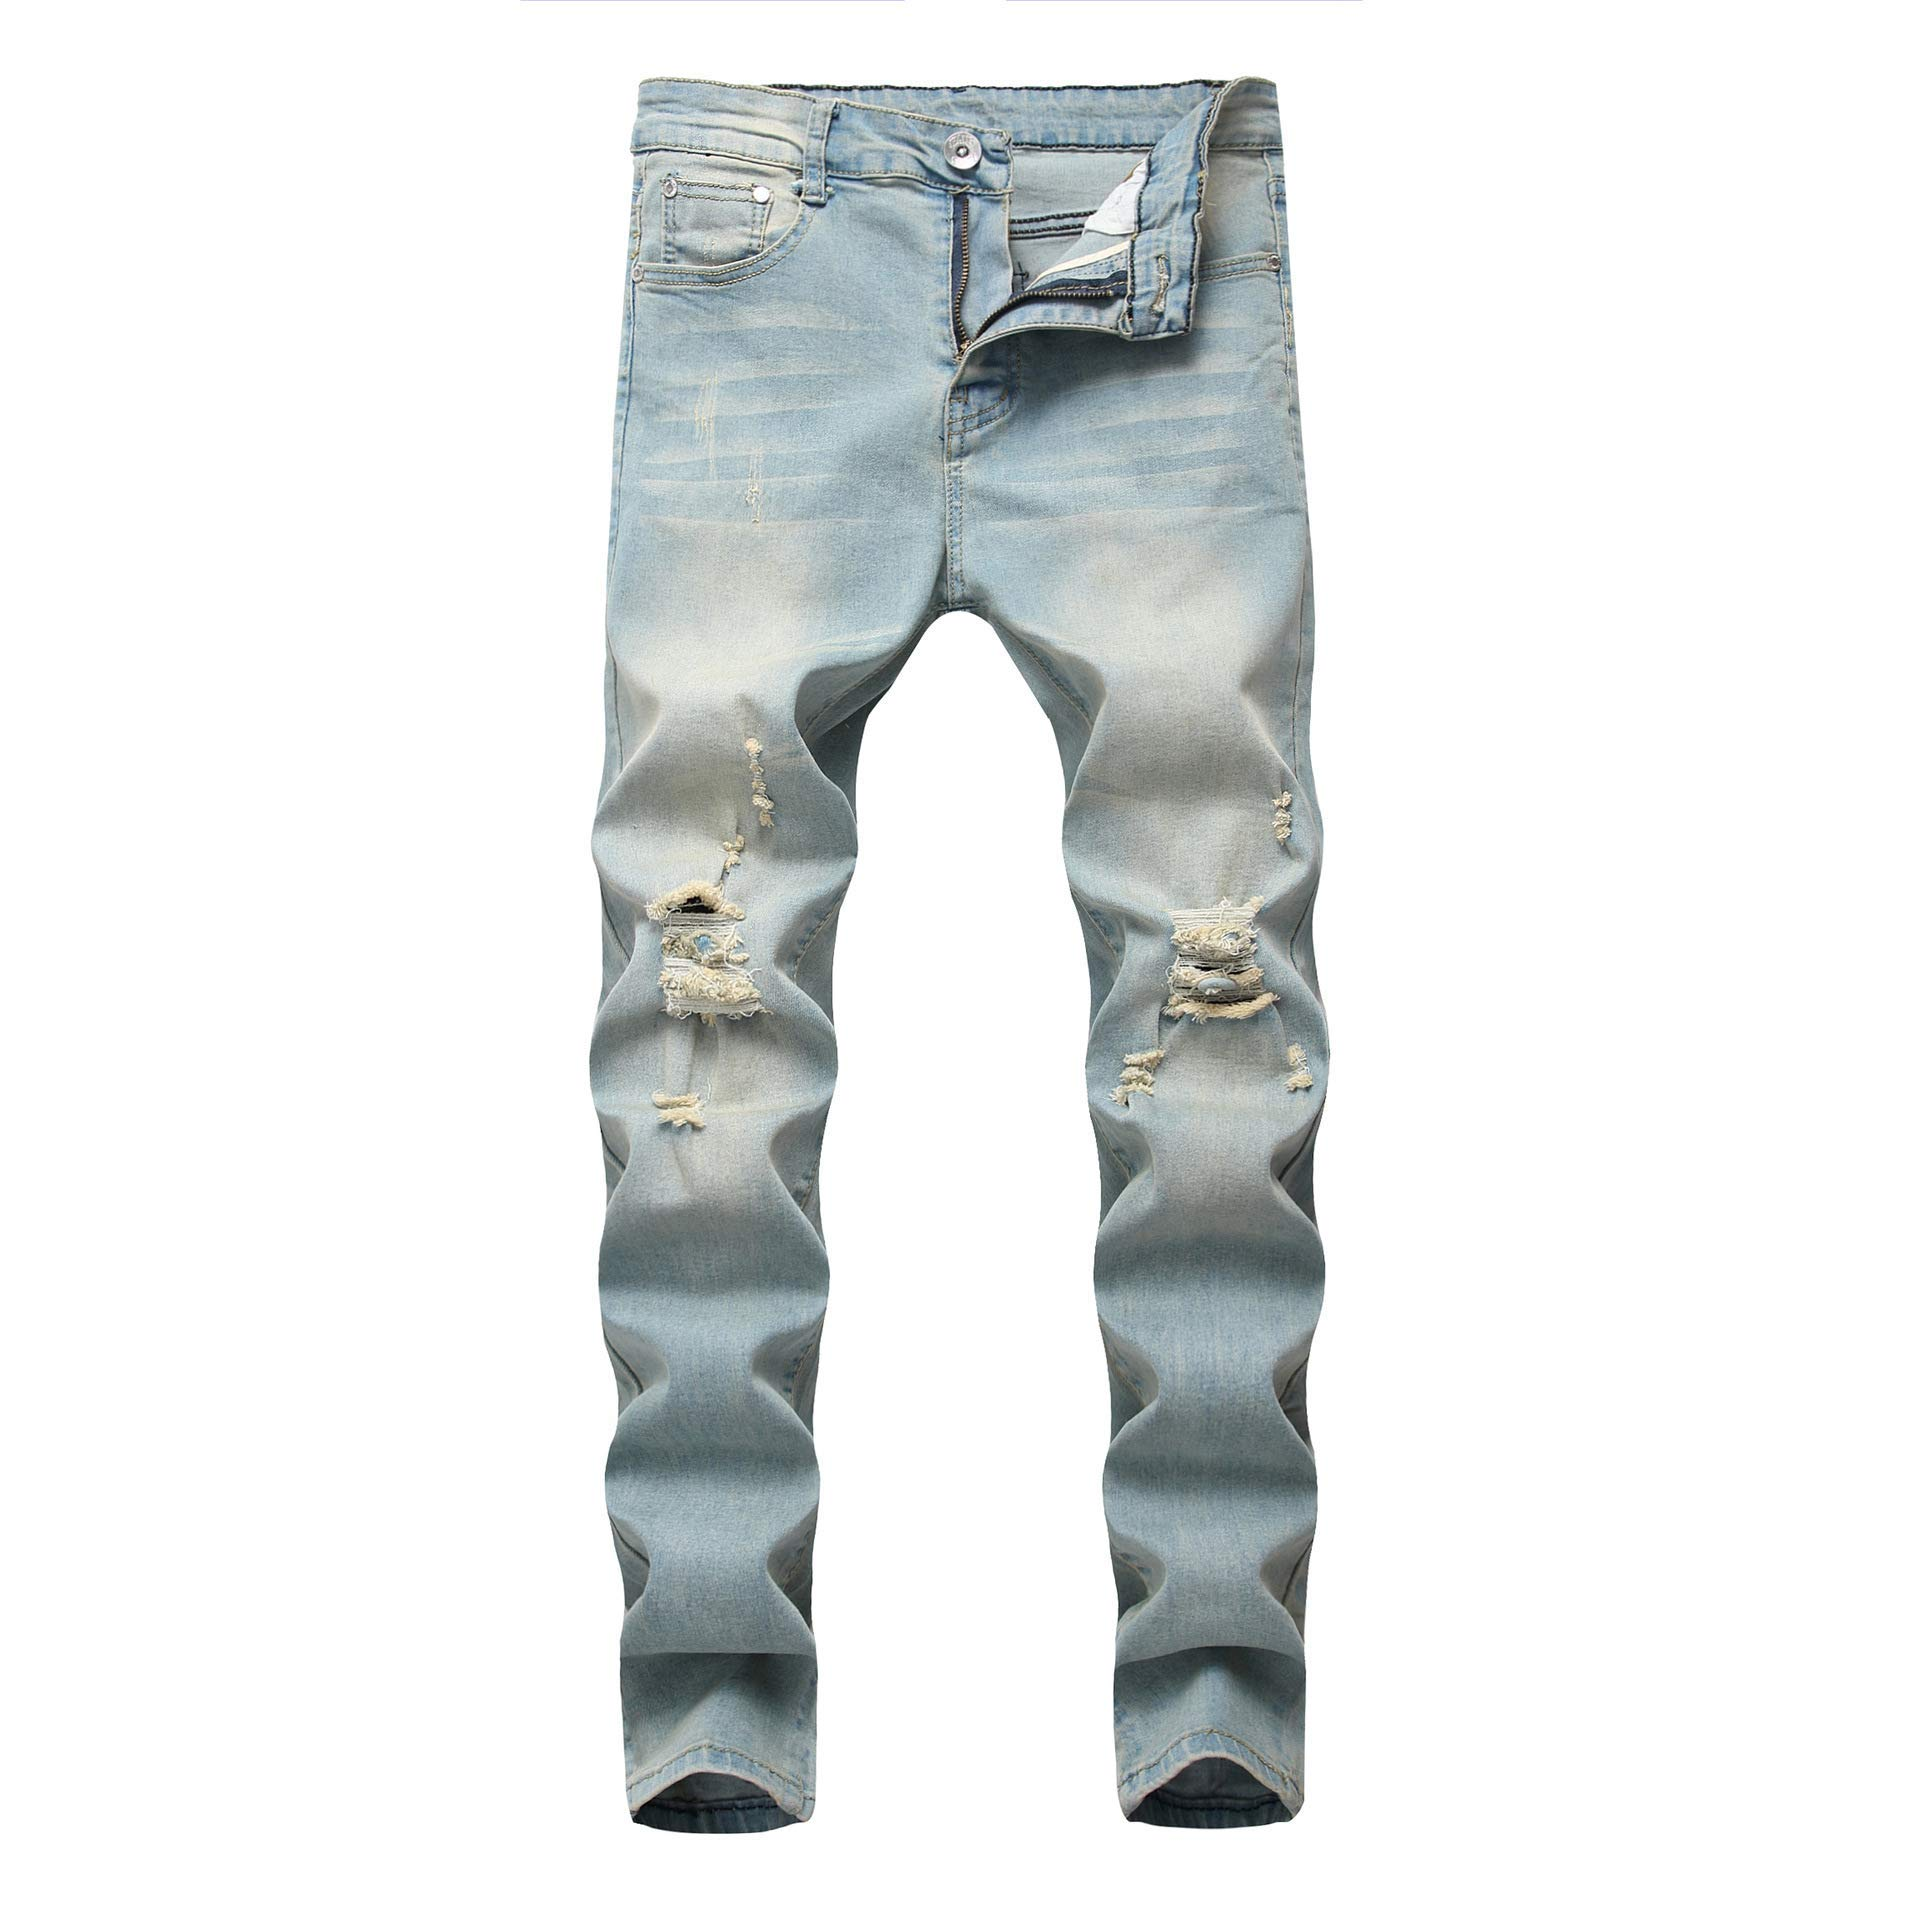 AACFCHAIN Boy's Ripped Skinny Jeans Distressed Elastic Straight Fit Fashion Denim Pants